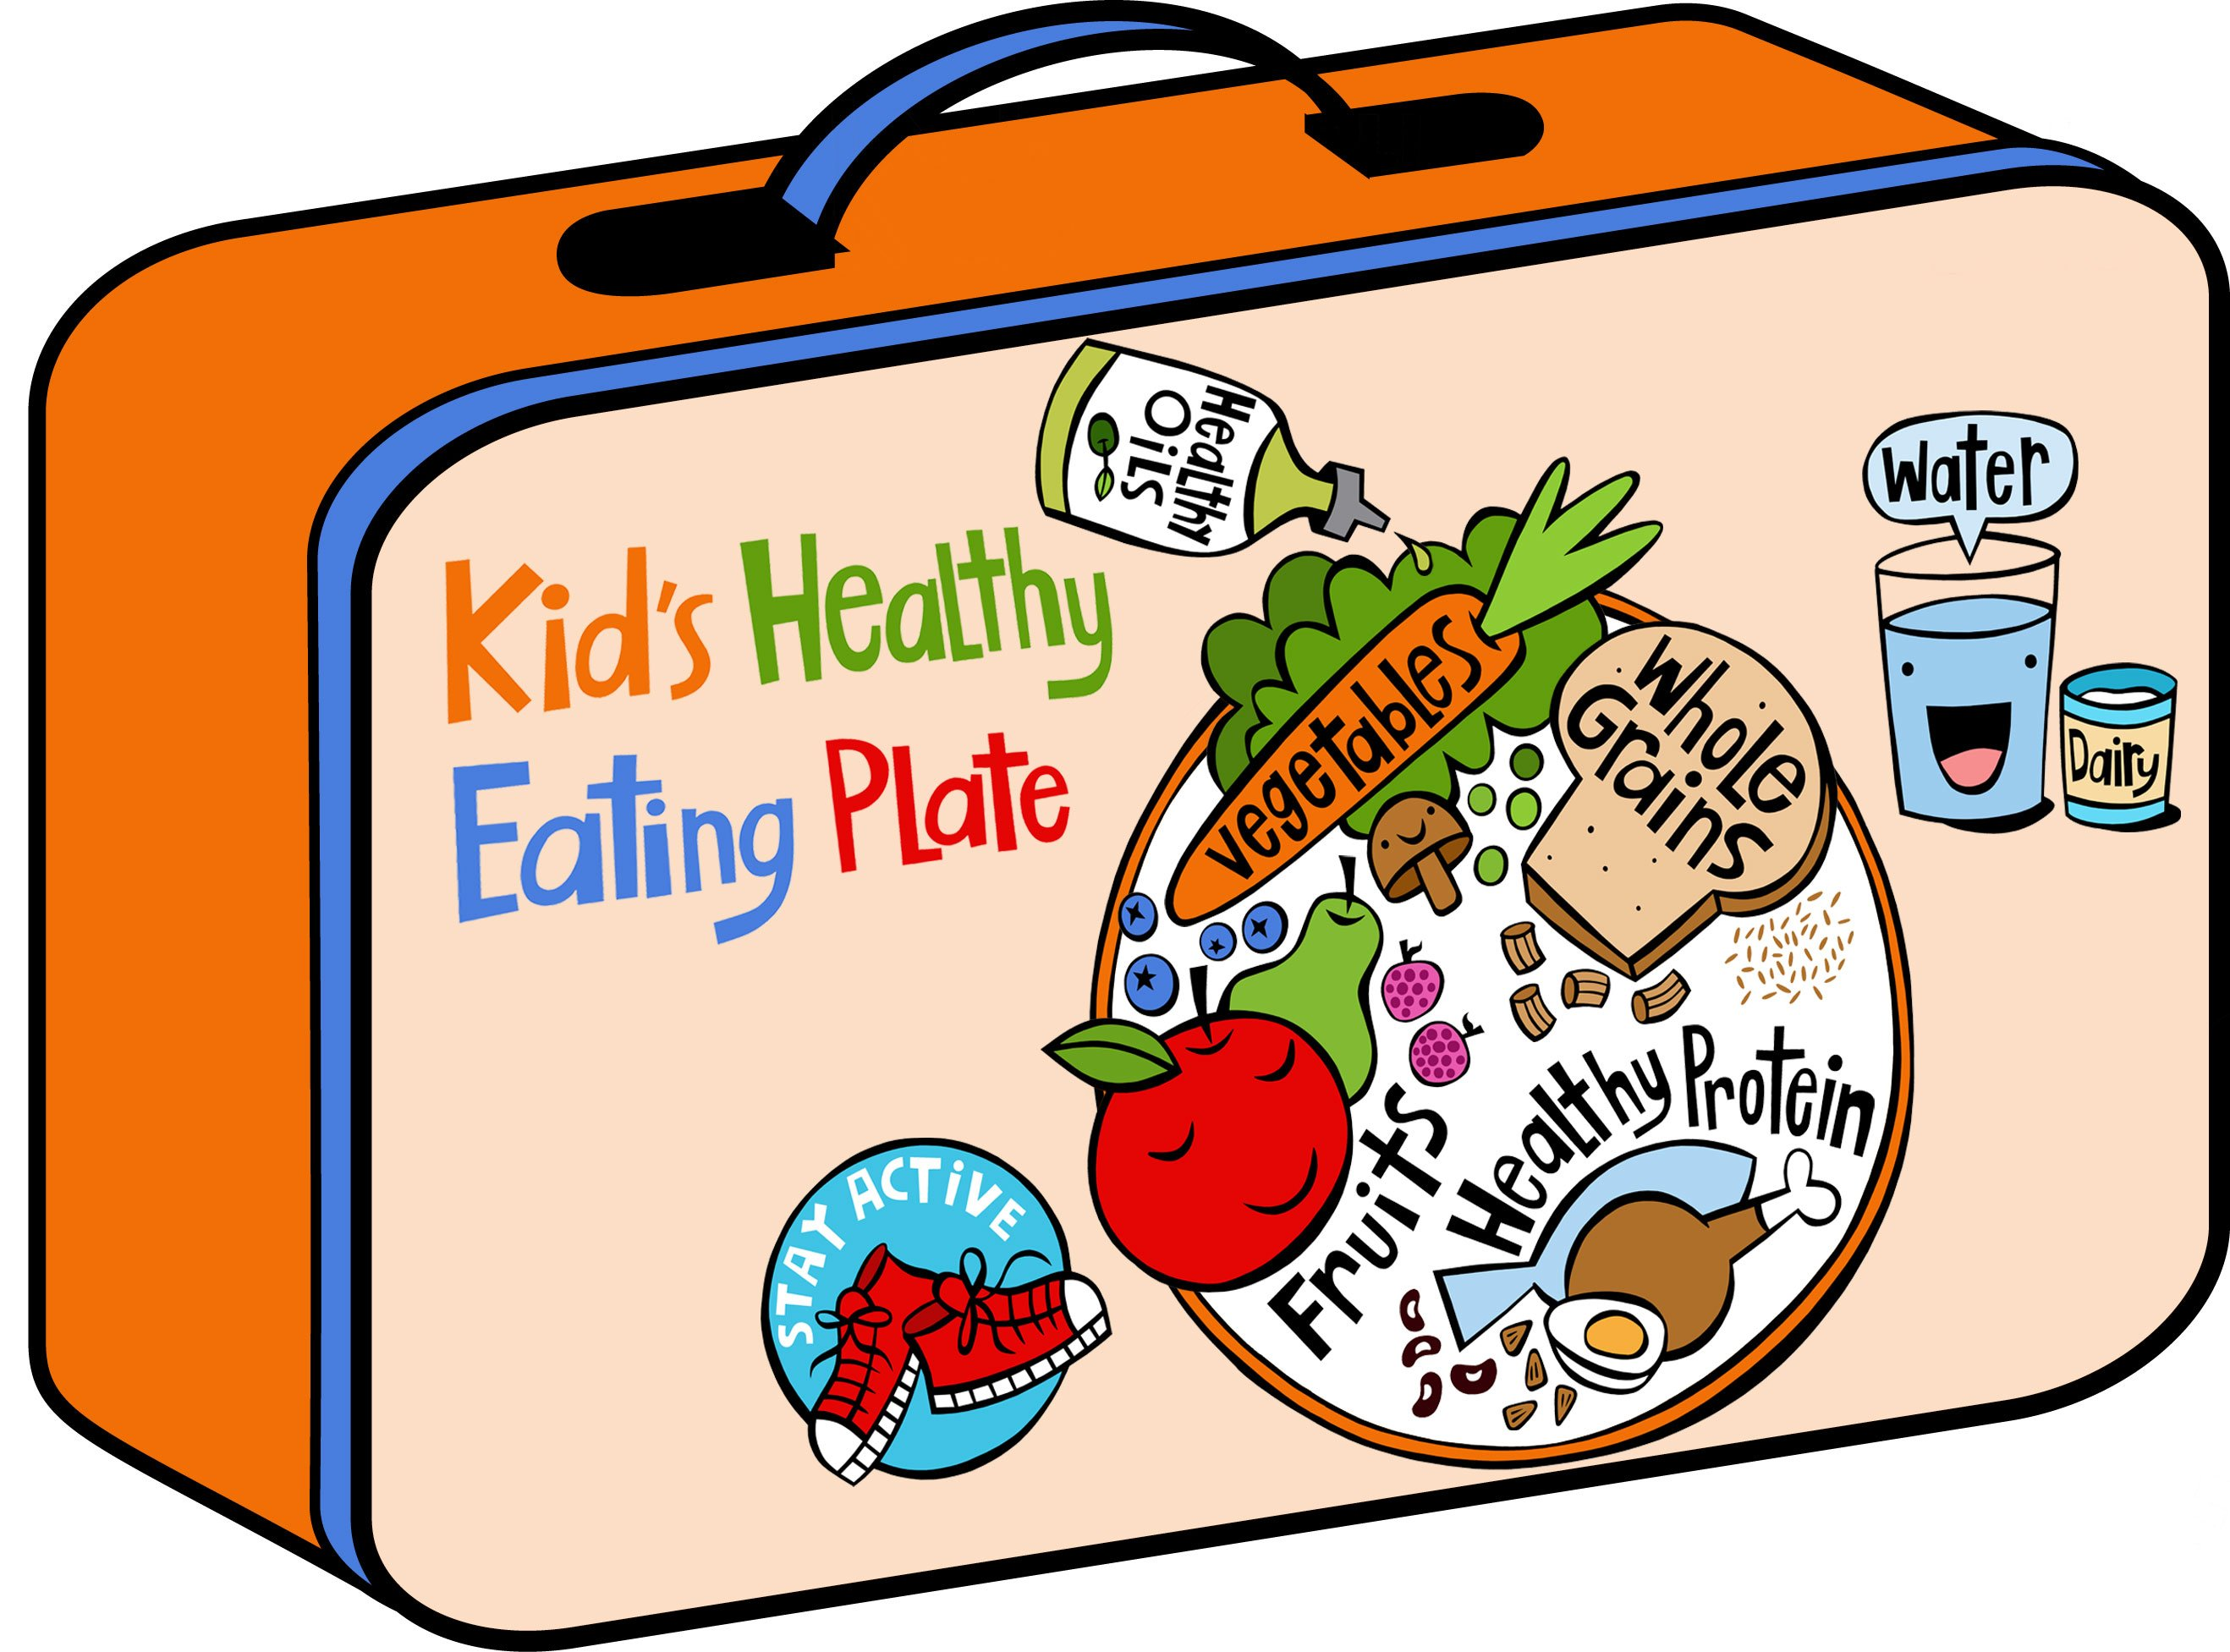 Kid's Healthy Eating Plate | The Nutrition Source | Harvard T H